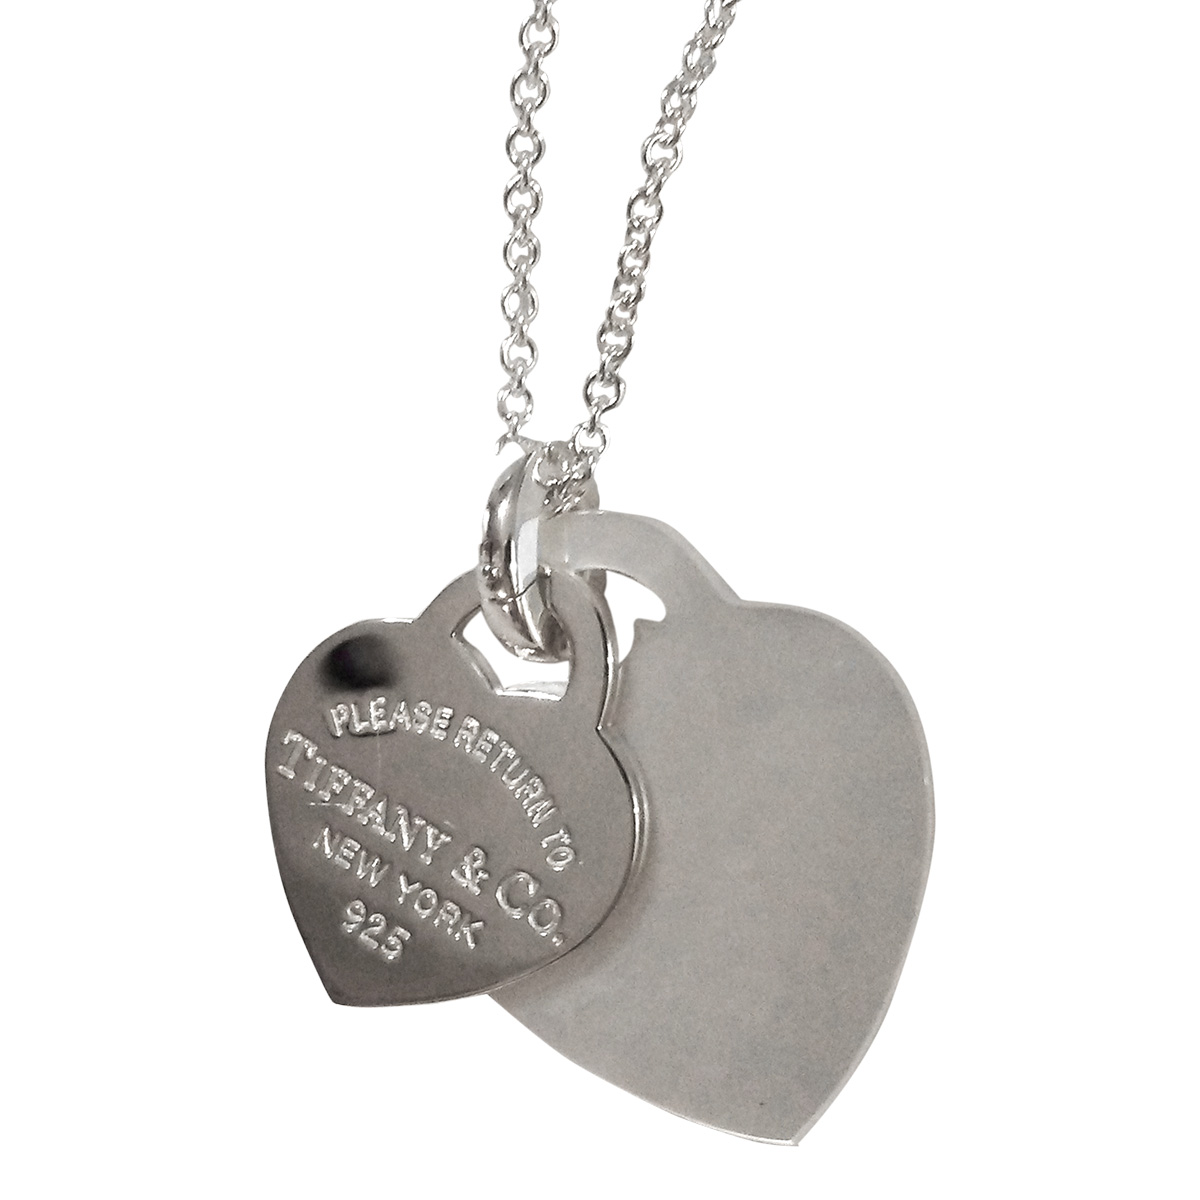 b5e0121d4cf94 Tiffany & Co. Return to Tiffany 925 Sterling Silver with Mother of Pearl  Double Heart Pendant Necklace